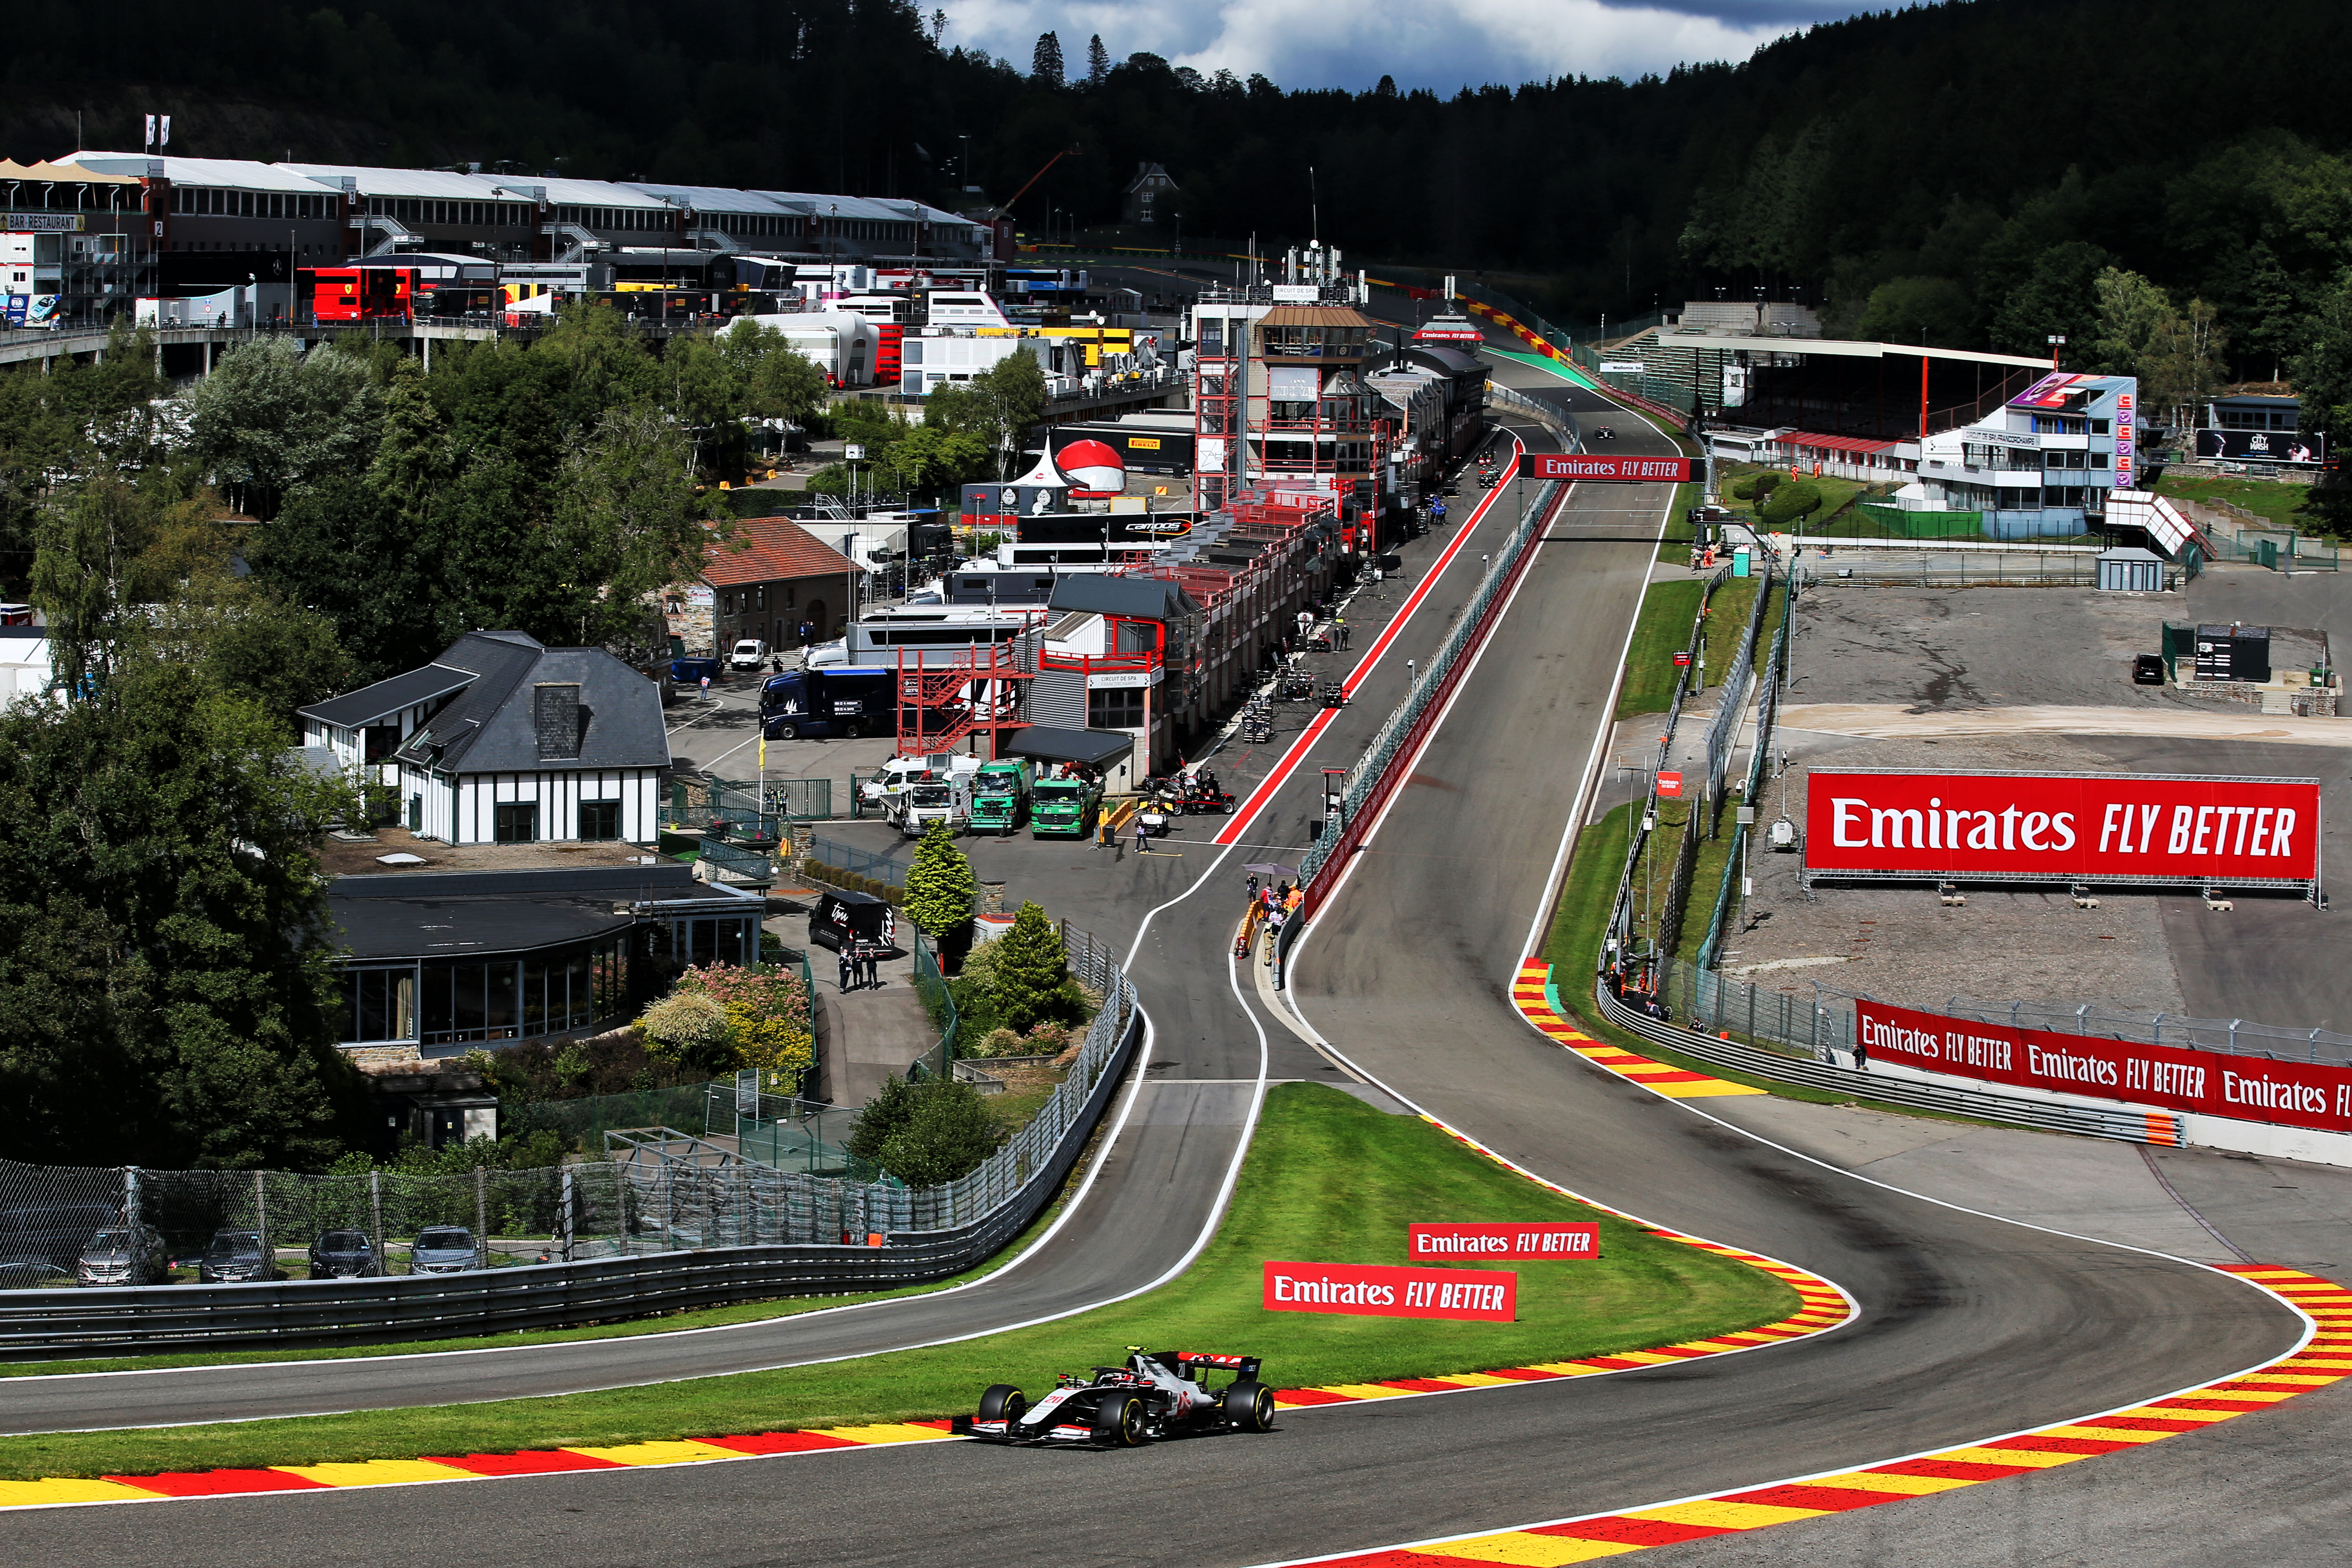 Motor Racing Formula One World Championship Belgian Grand Prix Qualifying Day Spa Francorchamps, Belgium